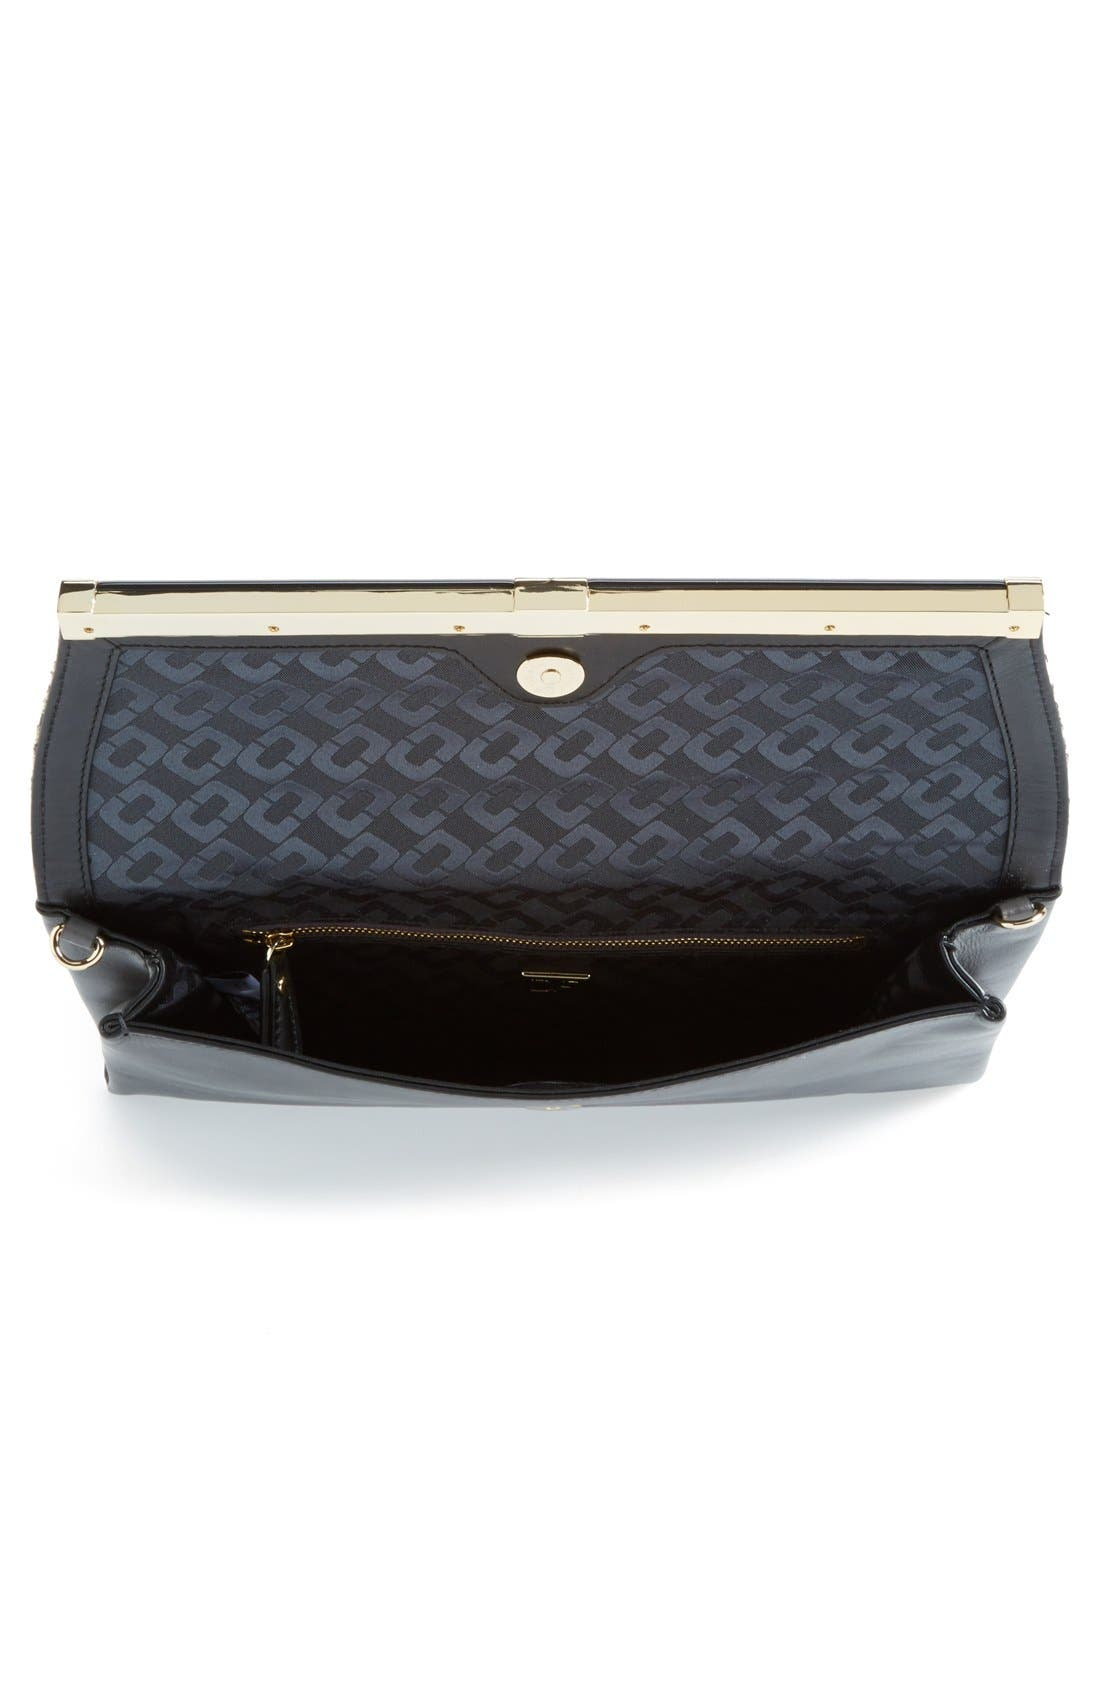 Alternate Image 3  - Diane von Furstenberg 'Large 440' Snakeskin Envelope Clutch